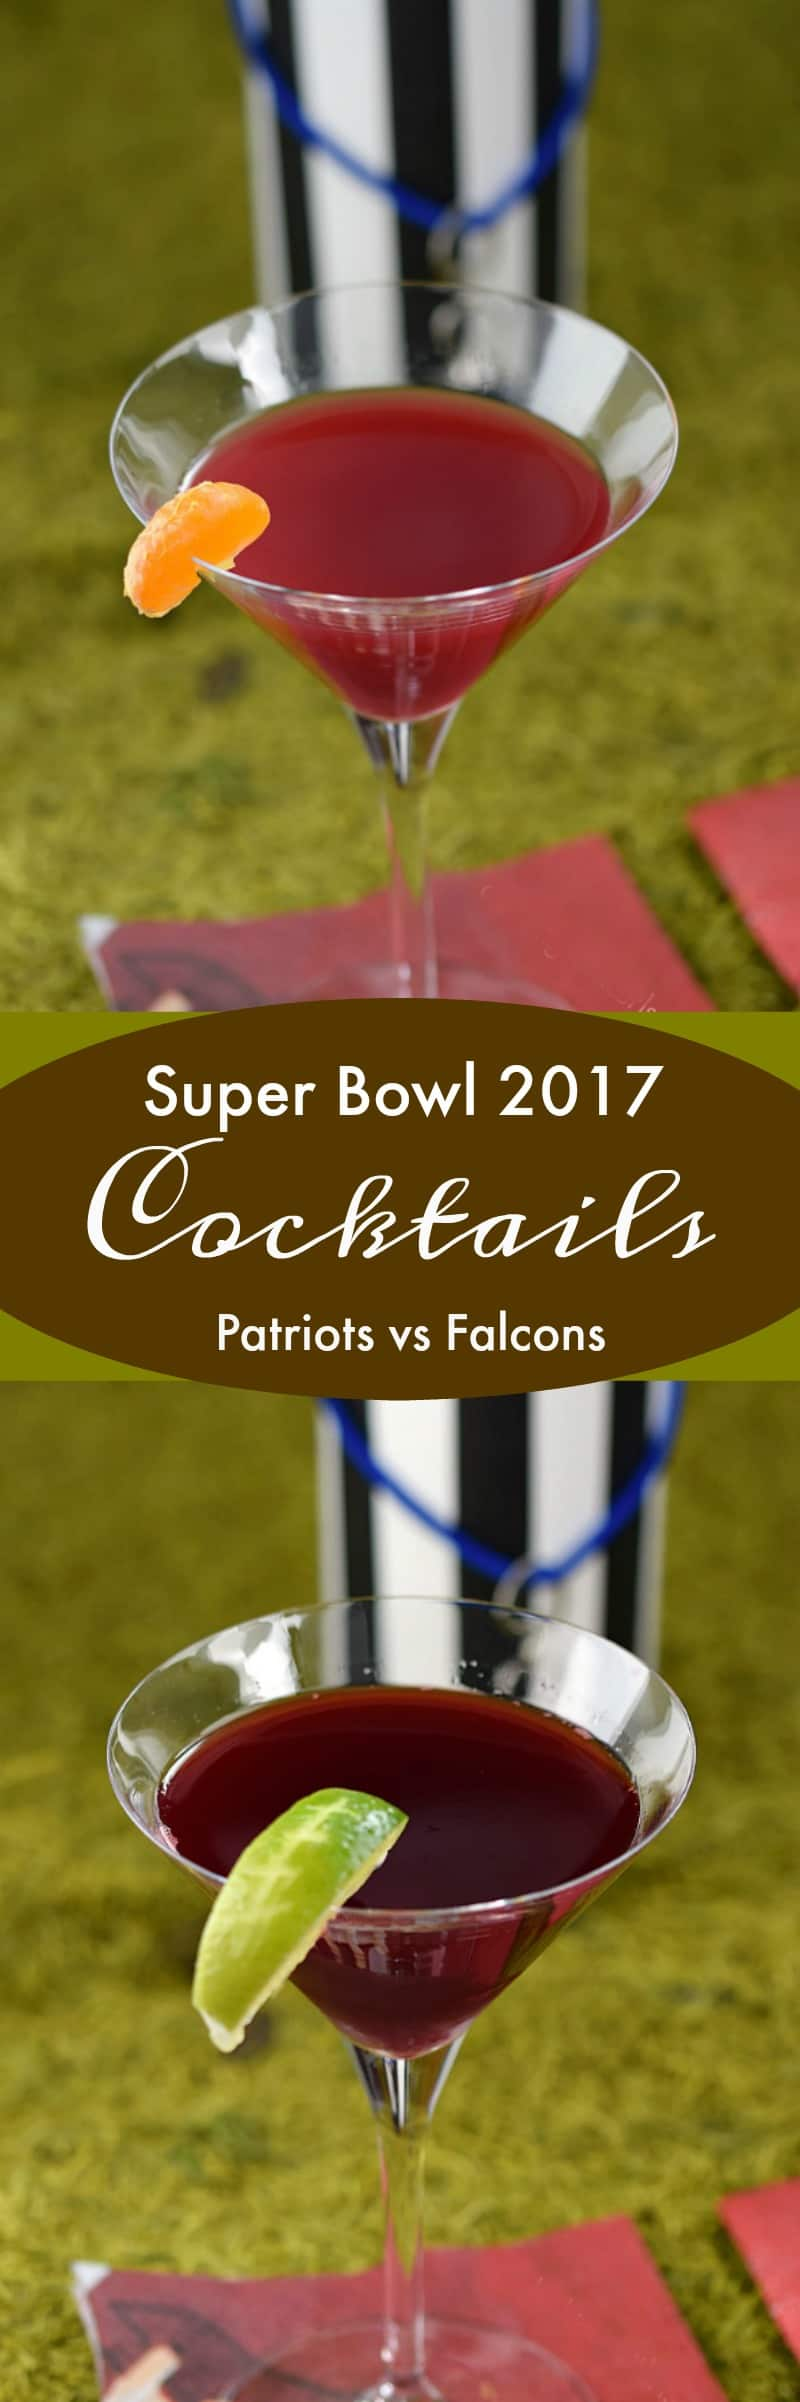 Every big game needs cocktails and these Super Bowl 2017 Cocktails do not disappoint. Let your guests choose Patriots vs Falcons | cookingwithcurls.com